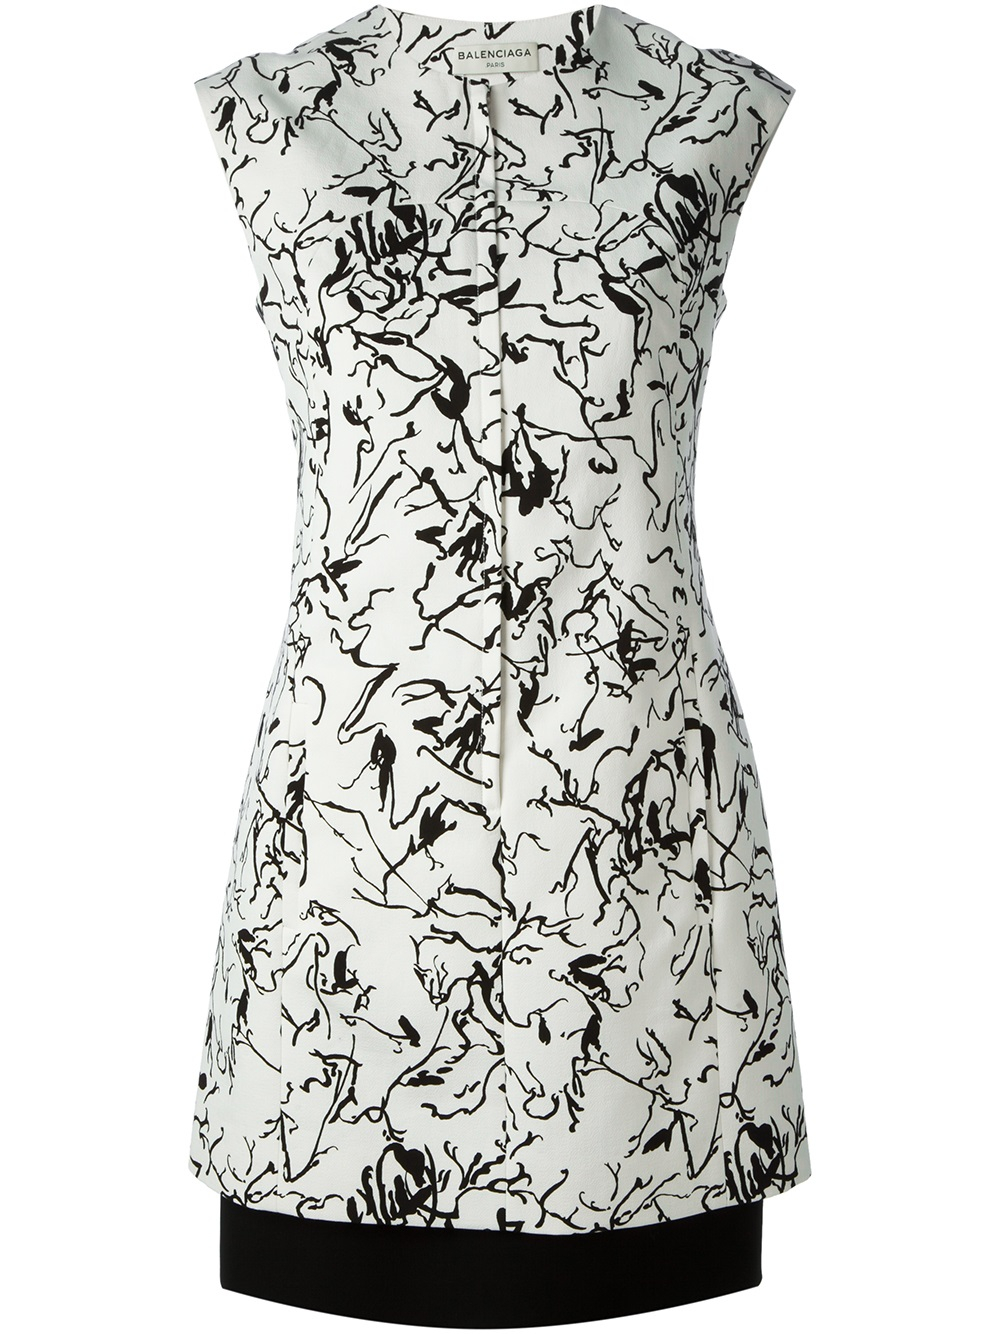 Lyst Balenciaga Ink Drawing Print Dress In White